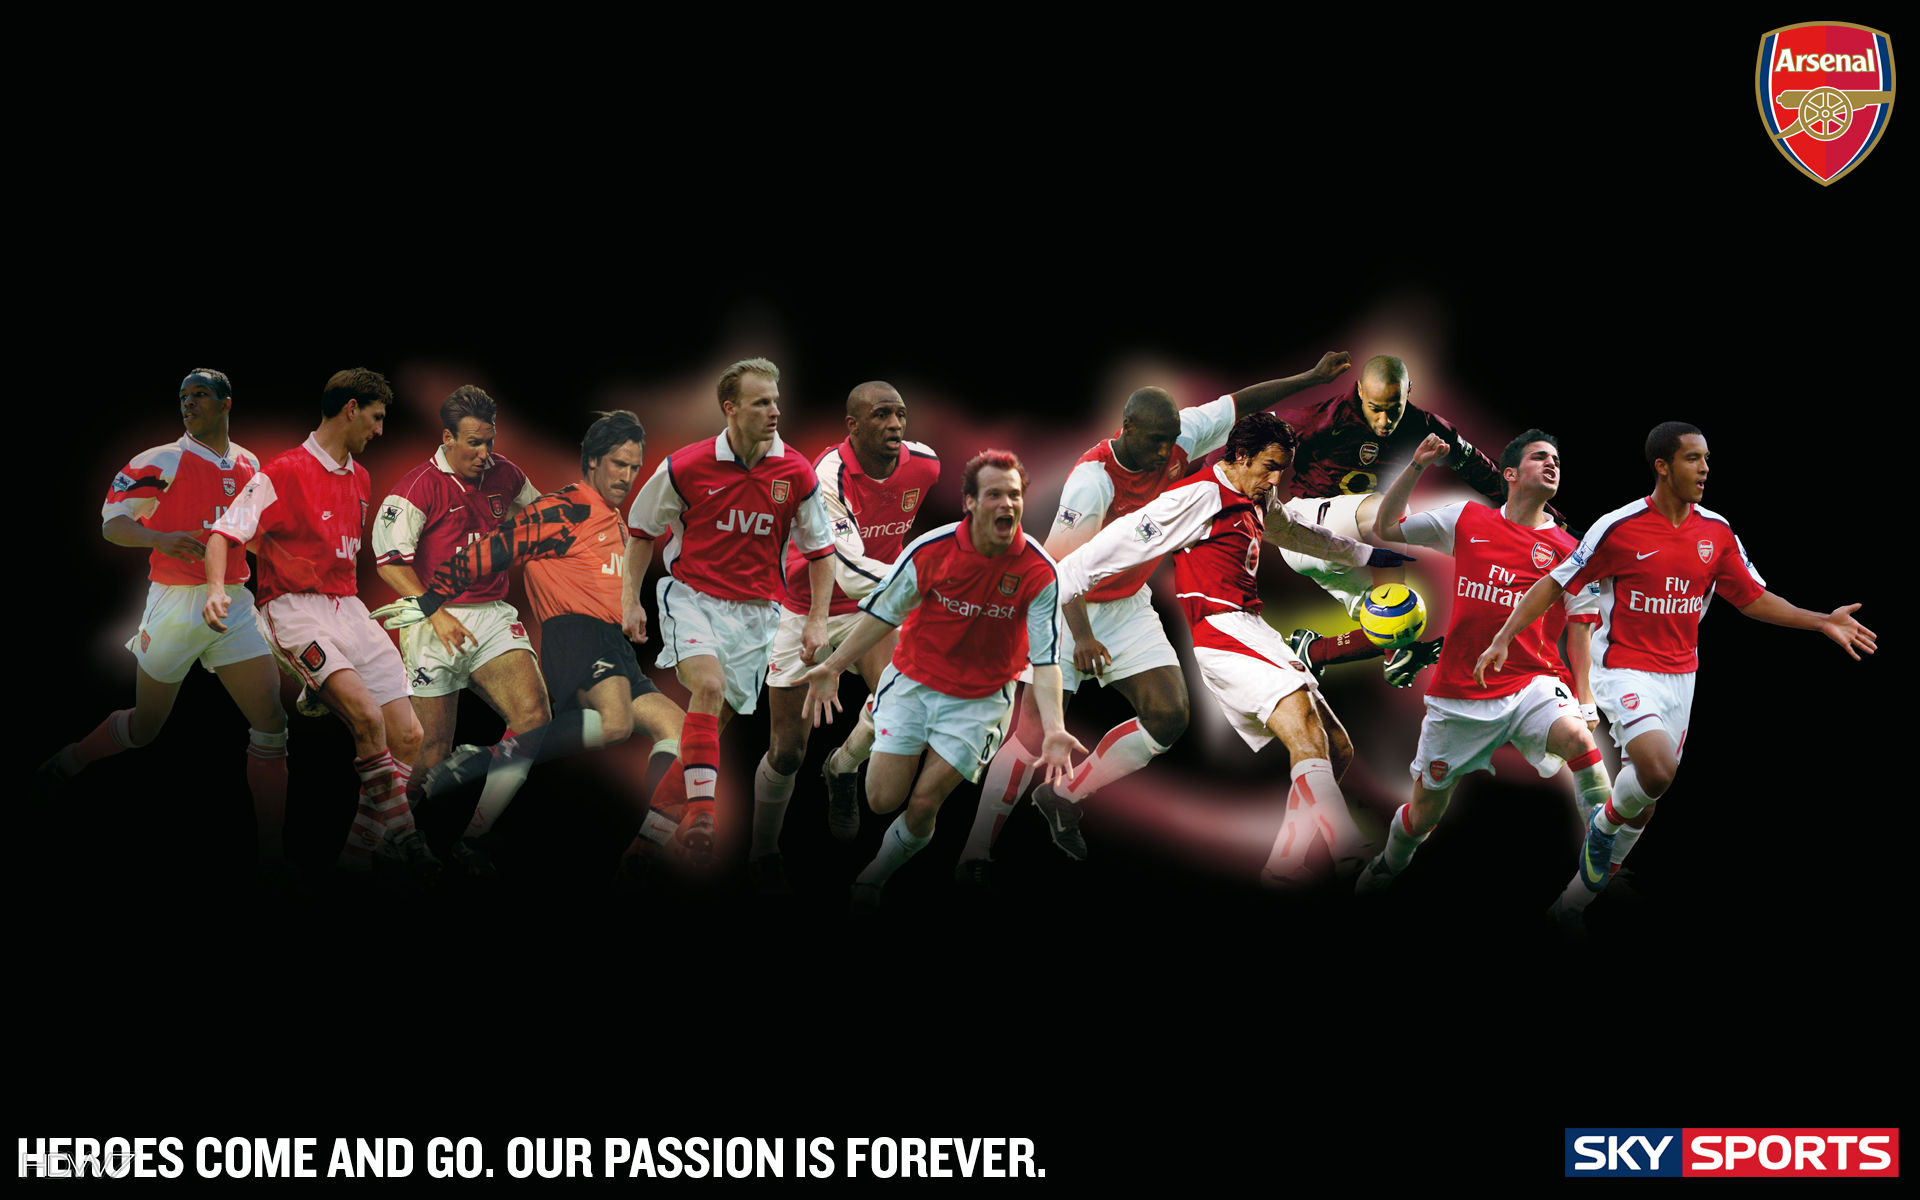 arsenal legendary players wall hd wallpaper gallery 97